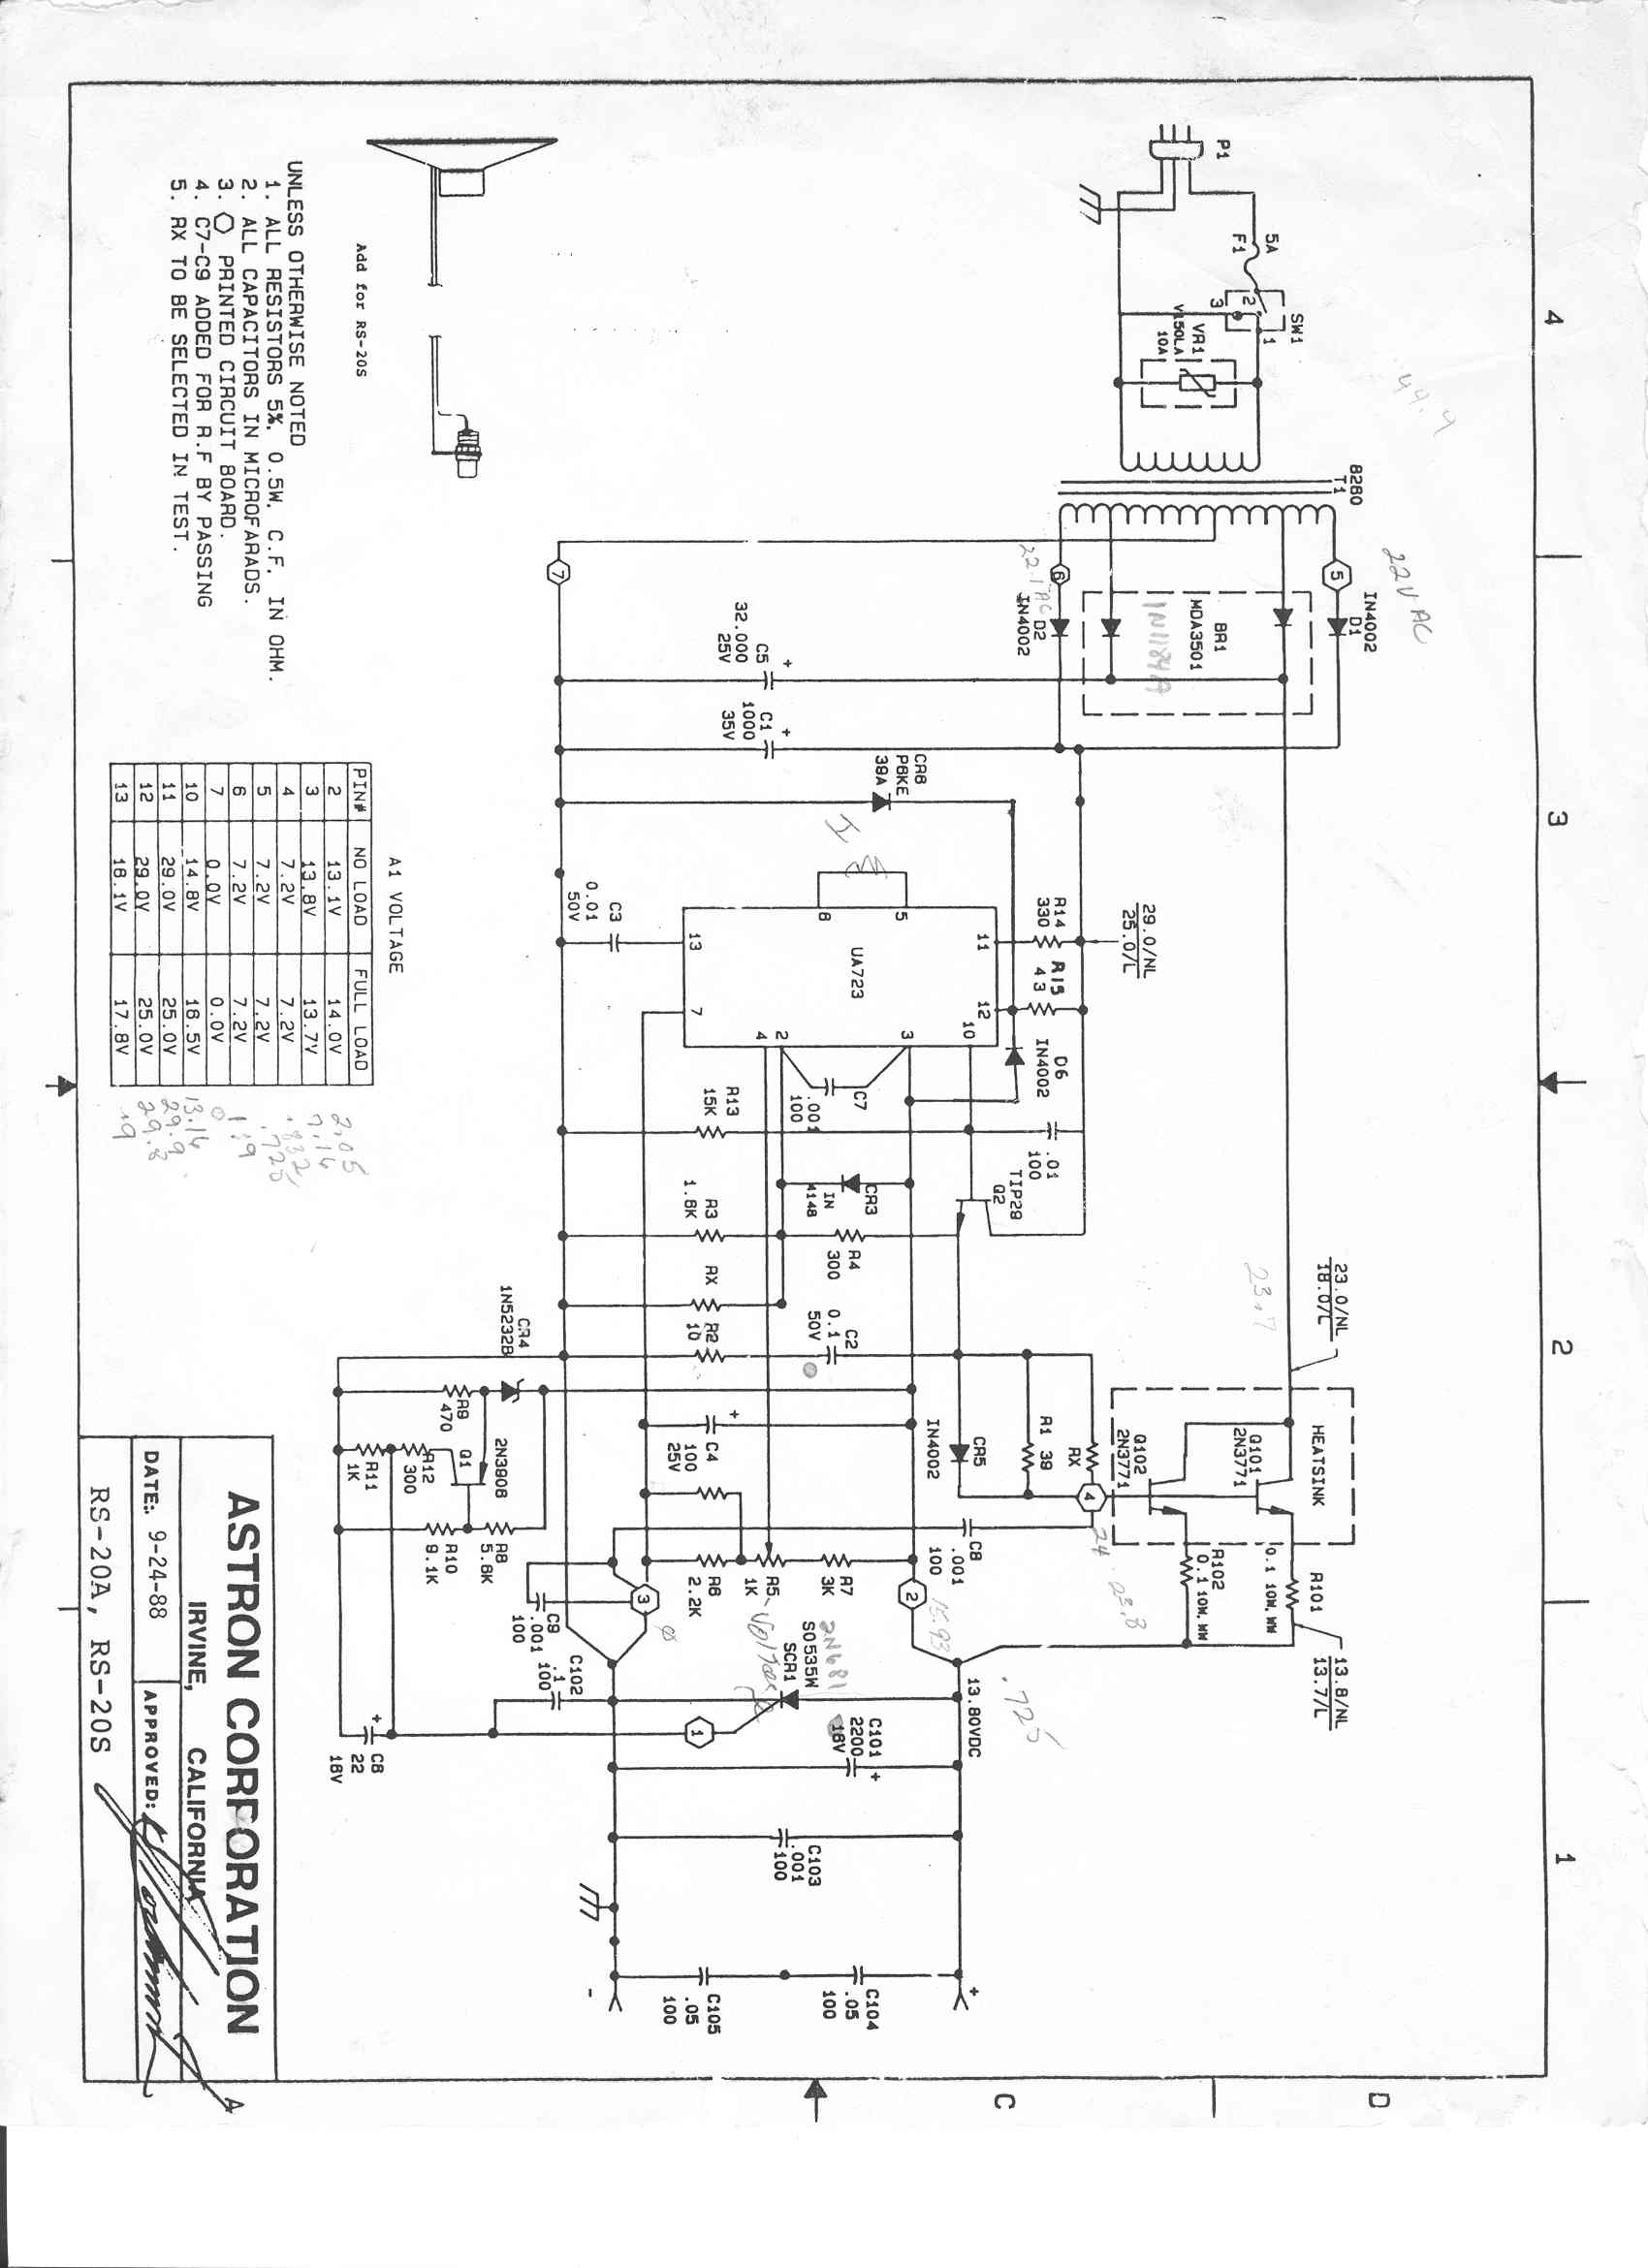 ASTRON POWER SUPPLIES on panasonic schematic diagram, adc schematic diagram, honda schematic diagram, pioneer schematic diagram, stihl schematic diagram, toshiba schematic diagram, solar schematic diagram, sanyo schematic diagram, hp schematic diagram, samsung schematic diagram, sony schematic diagram, yamaha schematic diagram, toro schematic diagram, honeywell schematic diagram, daiwa schematic diagram, rca schematic diagram, cub cadet schematic diagram, hitachi schematic diagram, motorola schematic diagram,